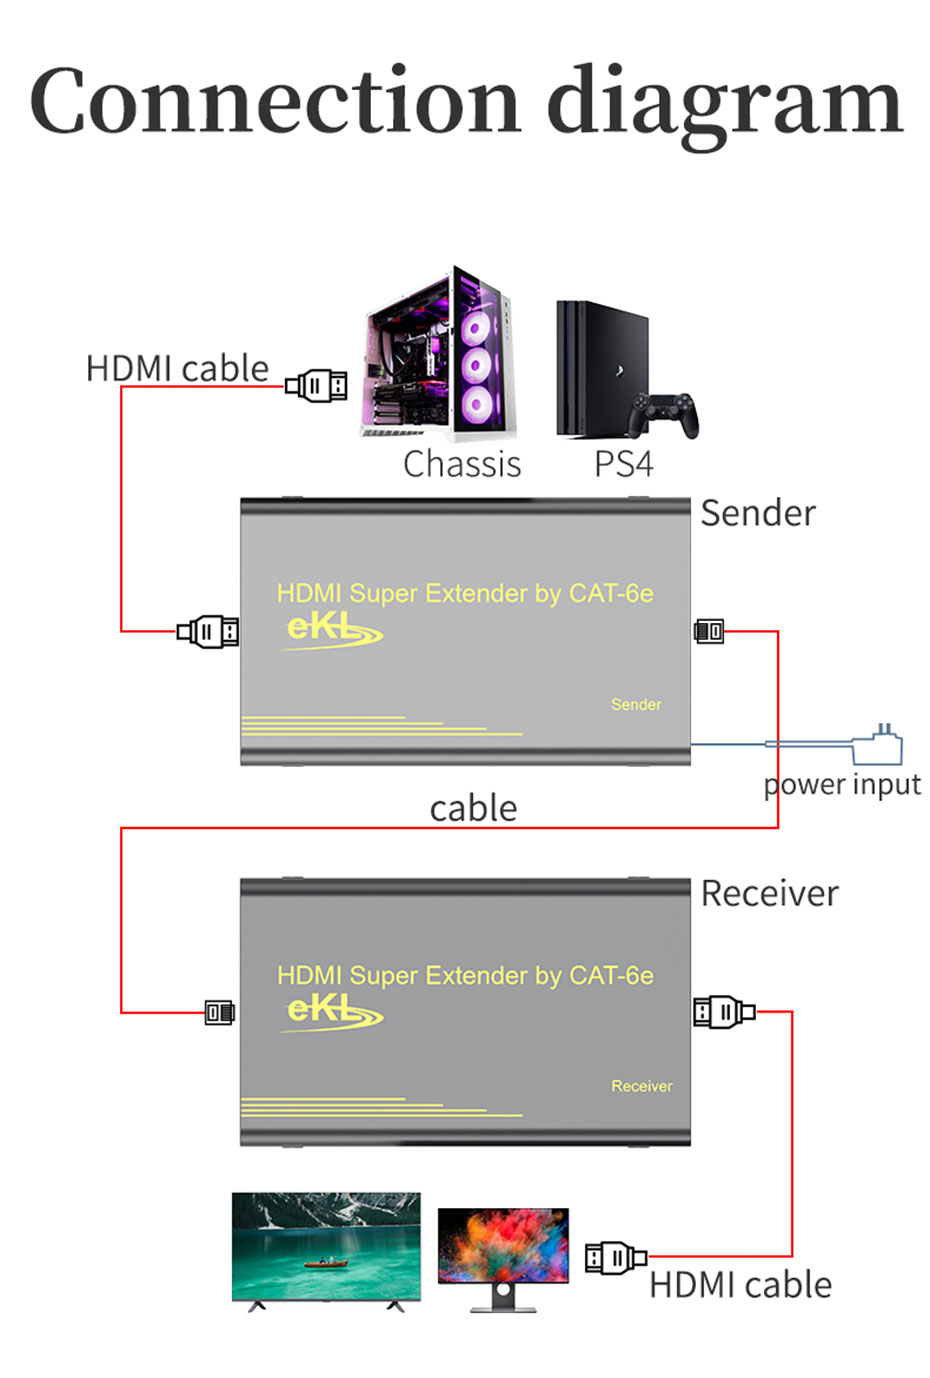 60m HDMI network cable extender HE60 connection diagram